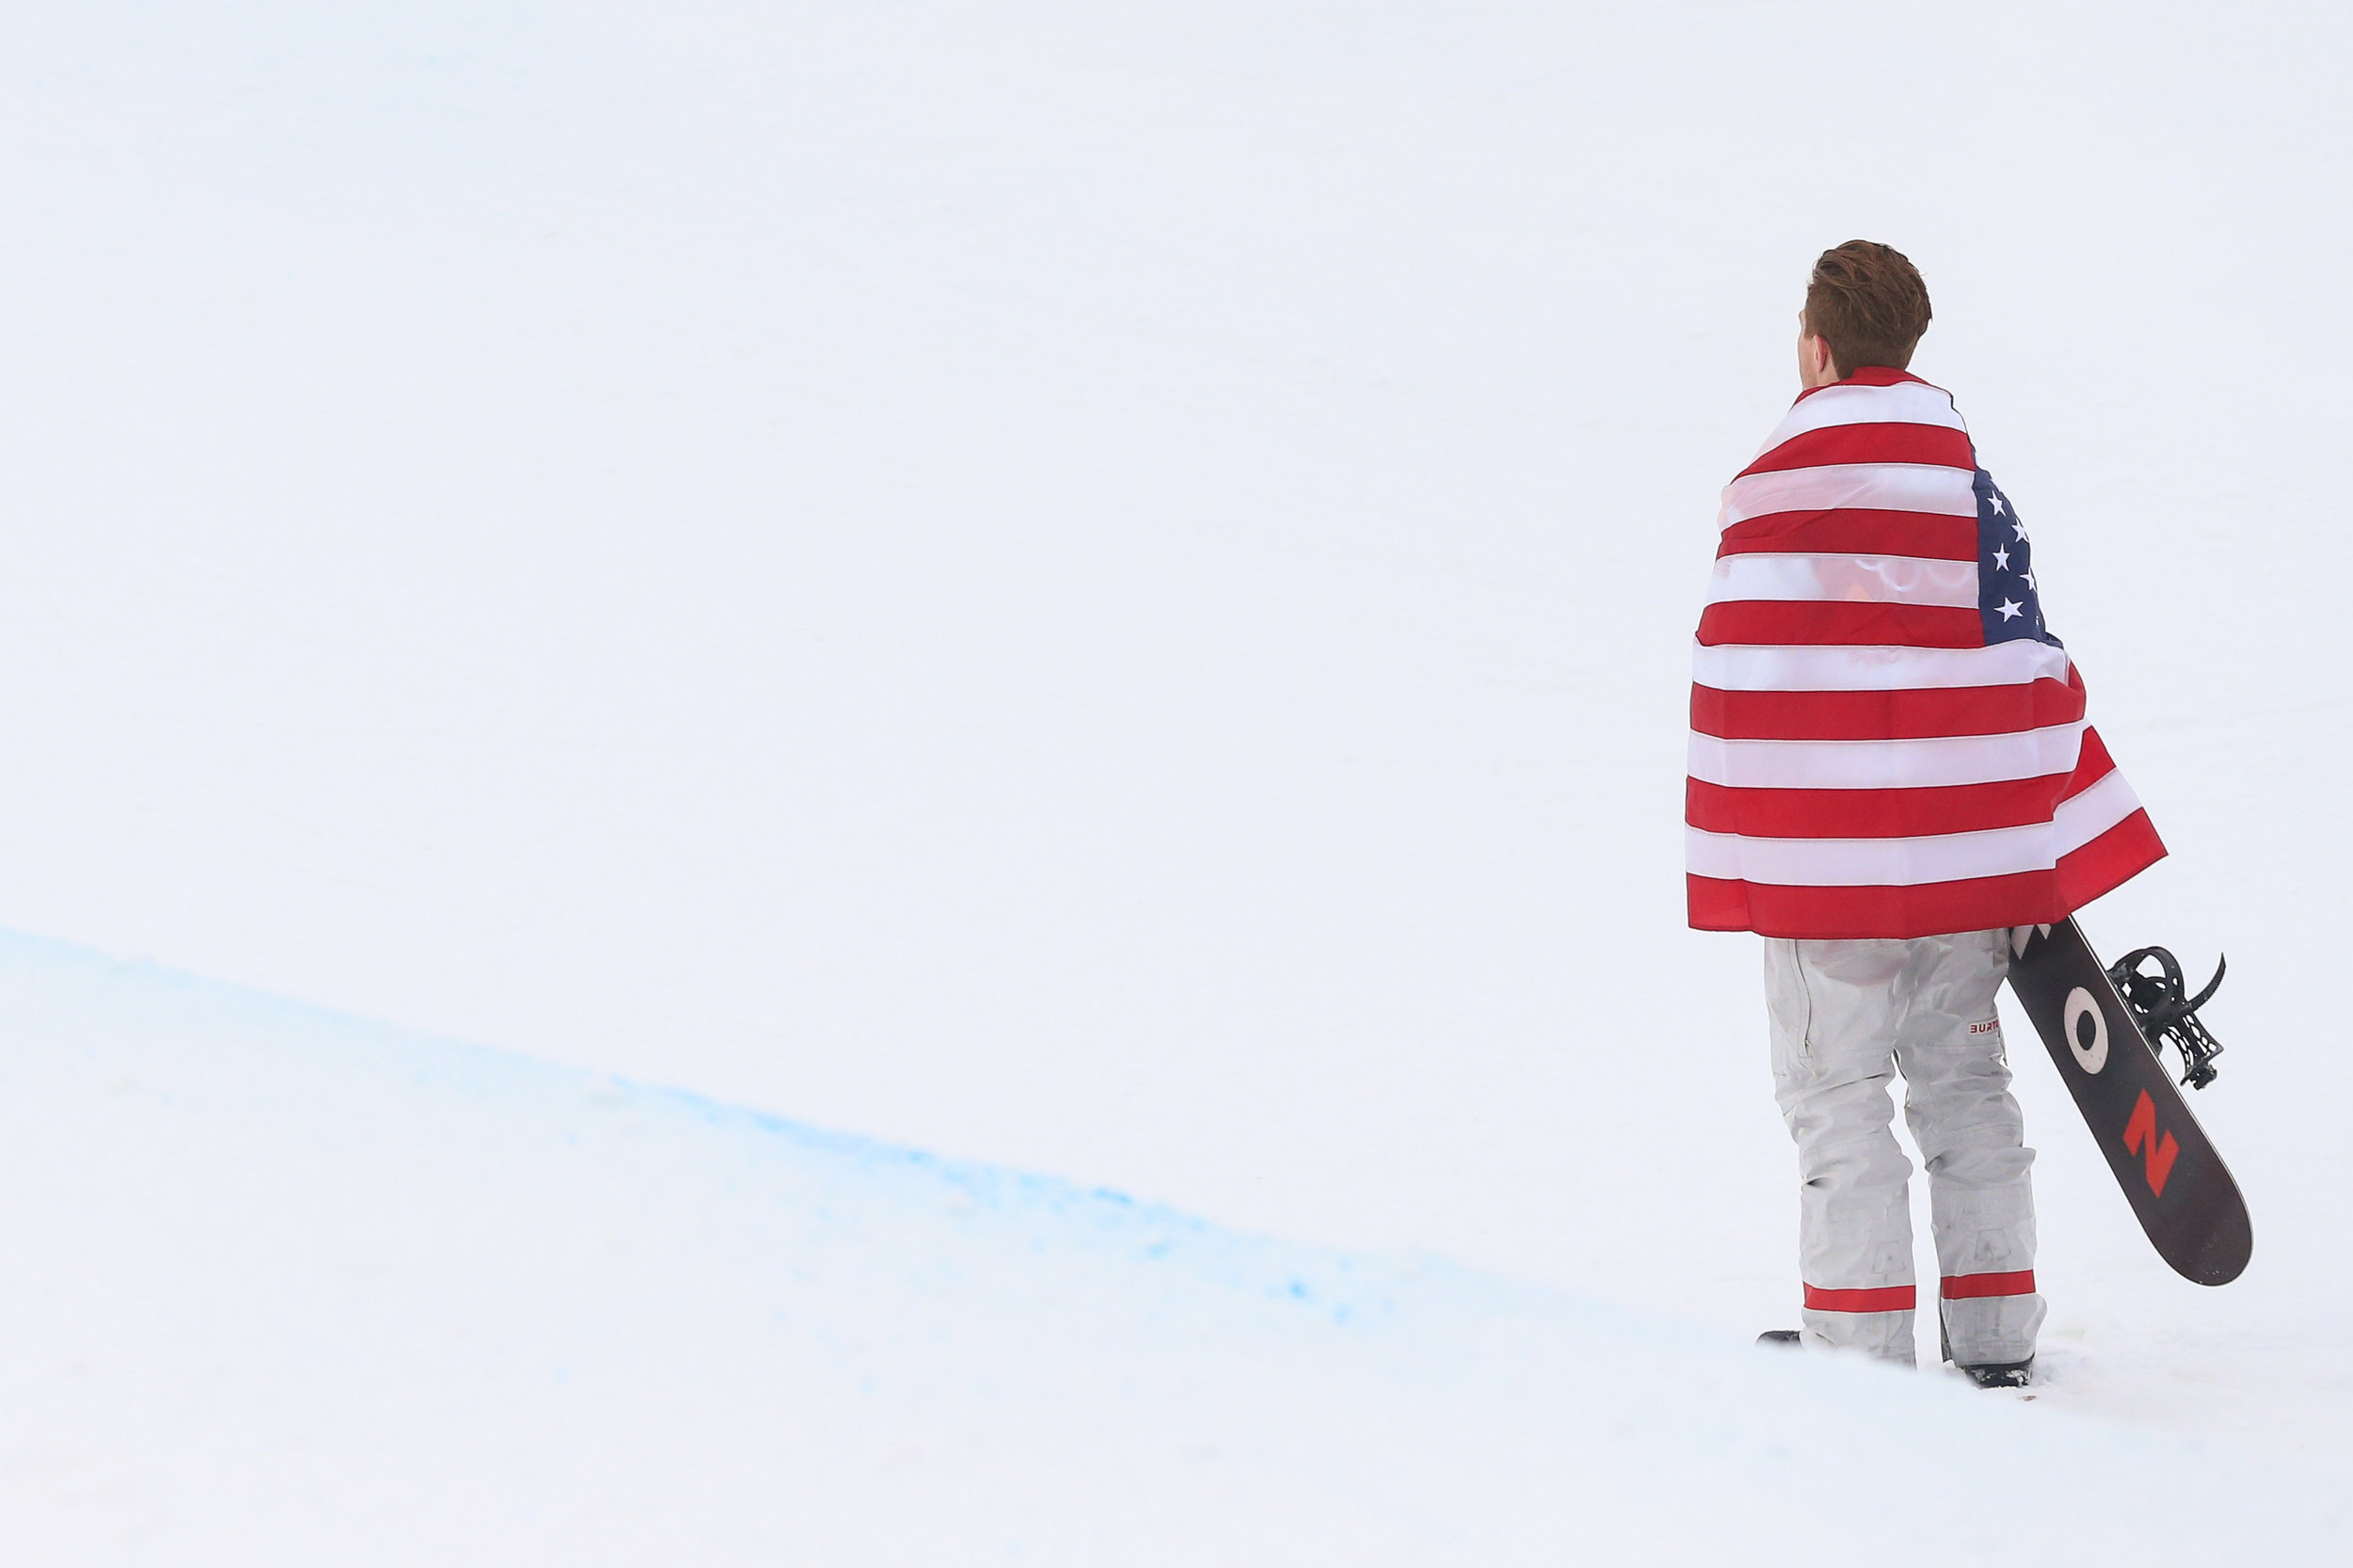 Shaun White of the United States looks up at the halfpipe while posing for a photo after winning the gold medal in the Men's Halfpipe finals at the 2018 Pyeongchang Winter Olympics at Phoenix Snow Park in Pyeongchang, South Korea, on February 14, 2018. White took gold in the event with a best score of 97.75. Photo by Matthew Healey/UPI